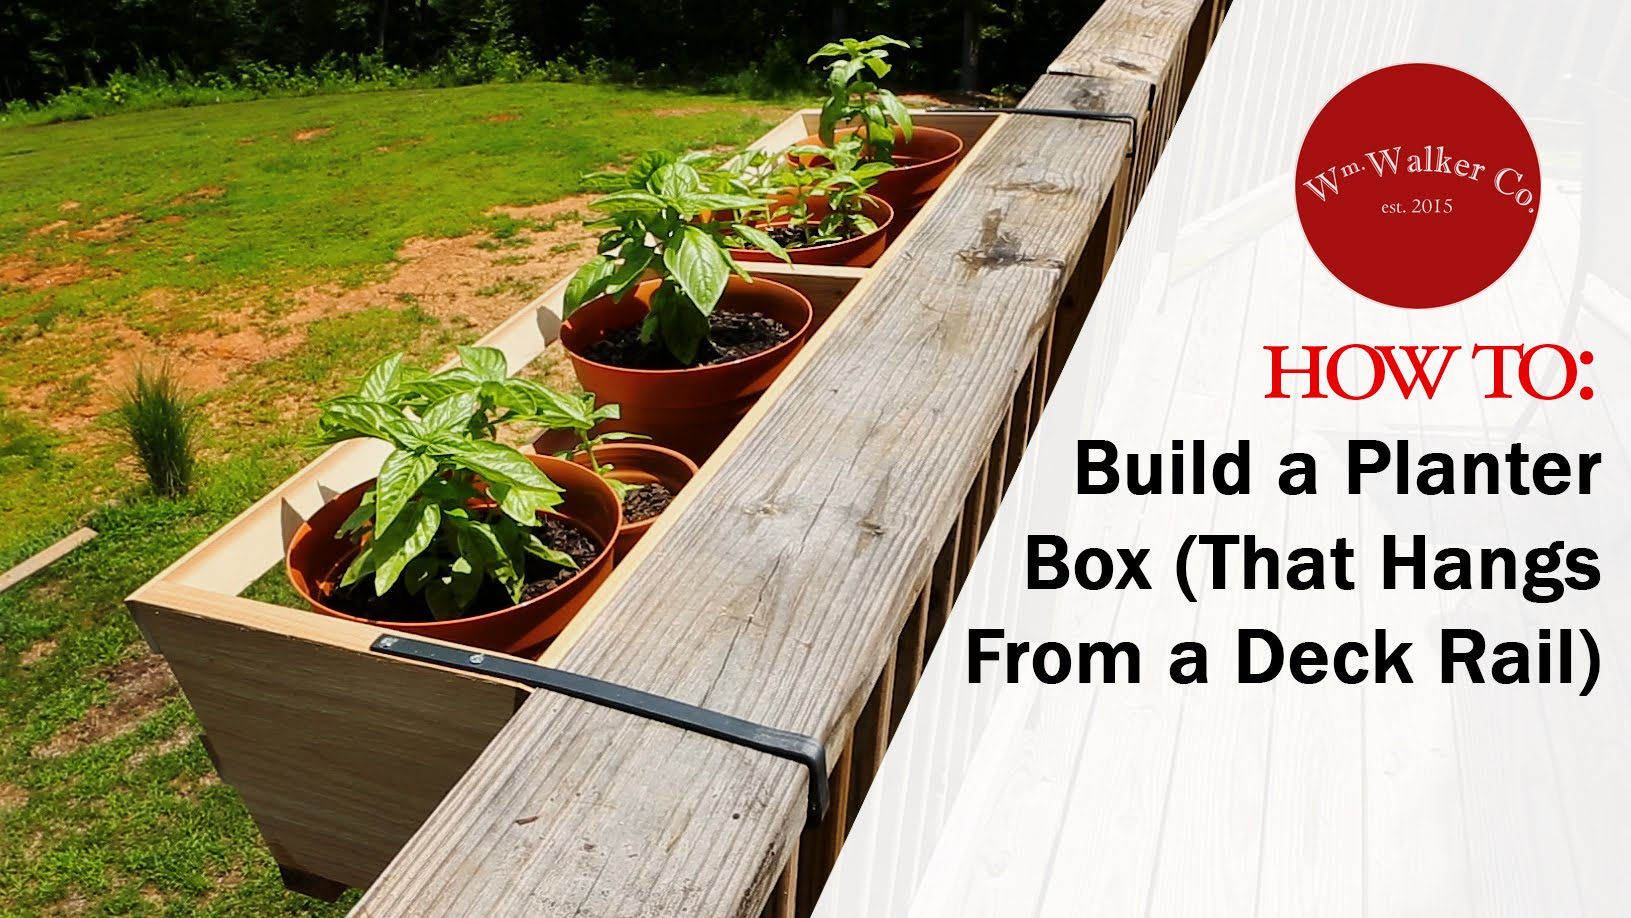 Deck Rail Planters | Deck Hangers for Plants | Lowes Planter Box